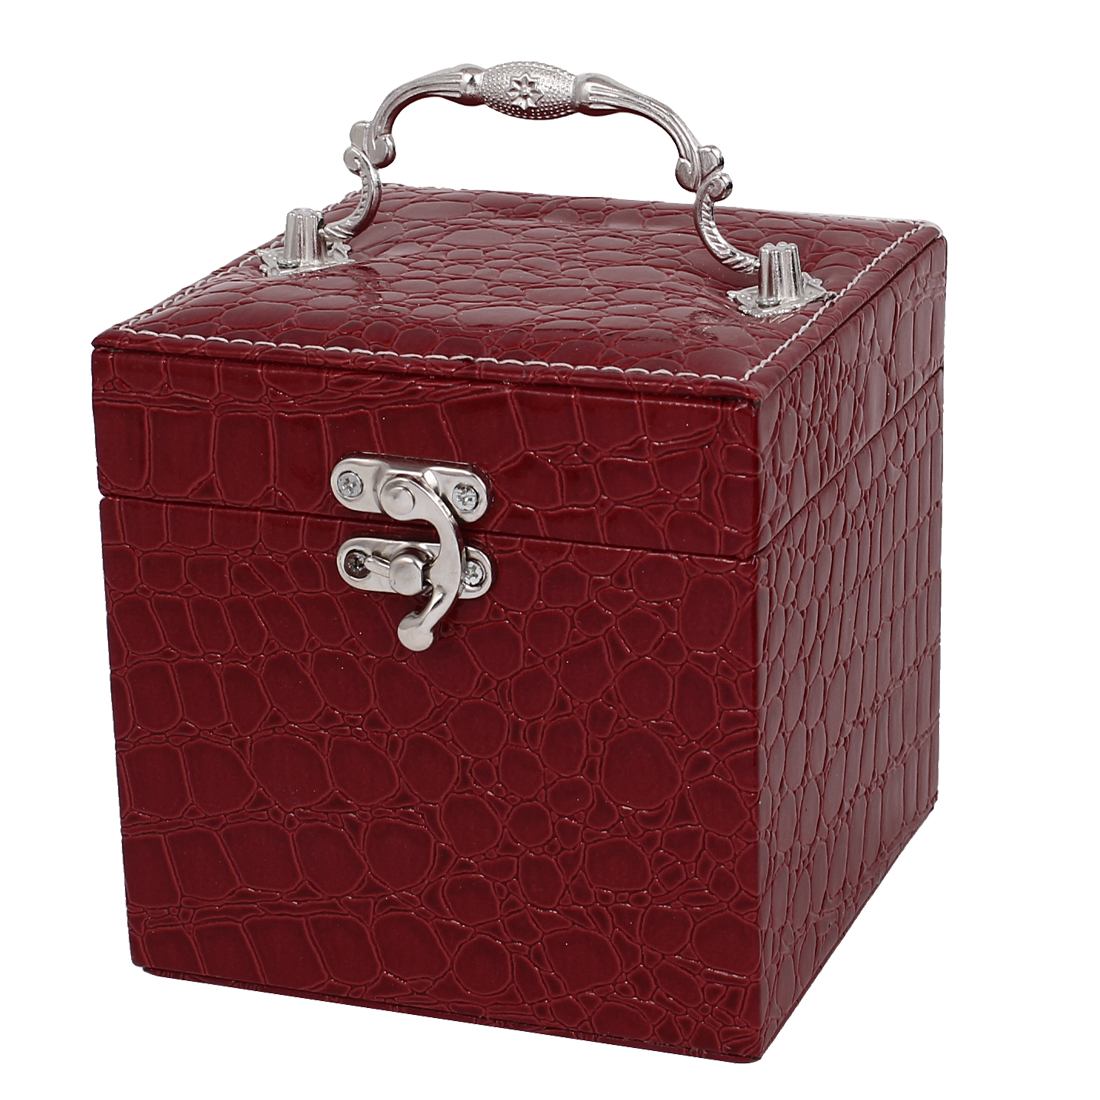 Lady Alligator Pattern Faux Leather 3-Layers Jewelry Box Case Organizer Red